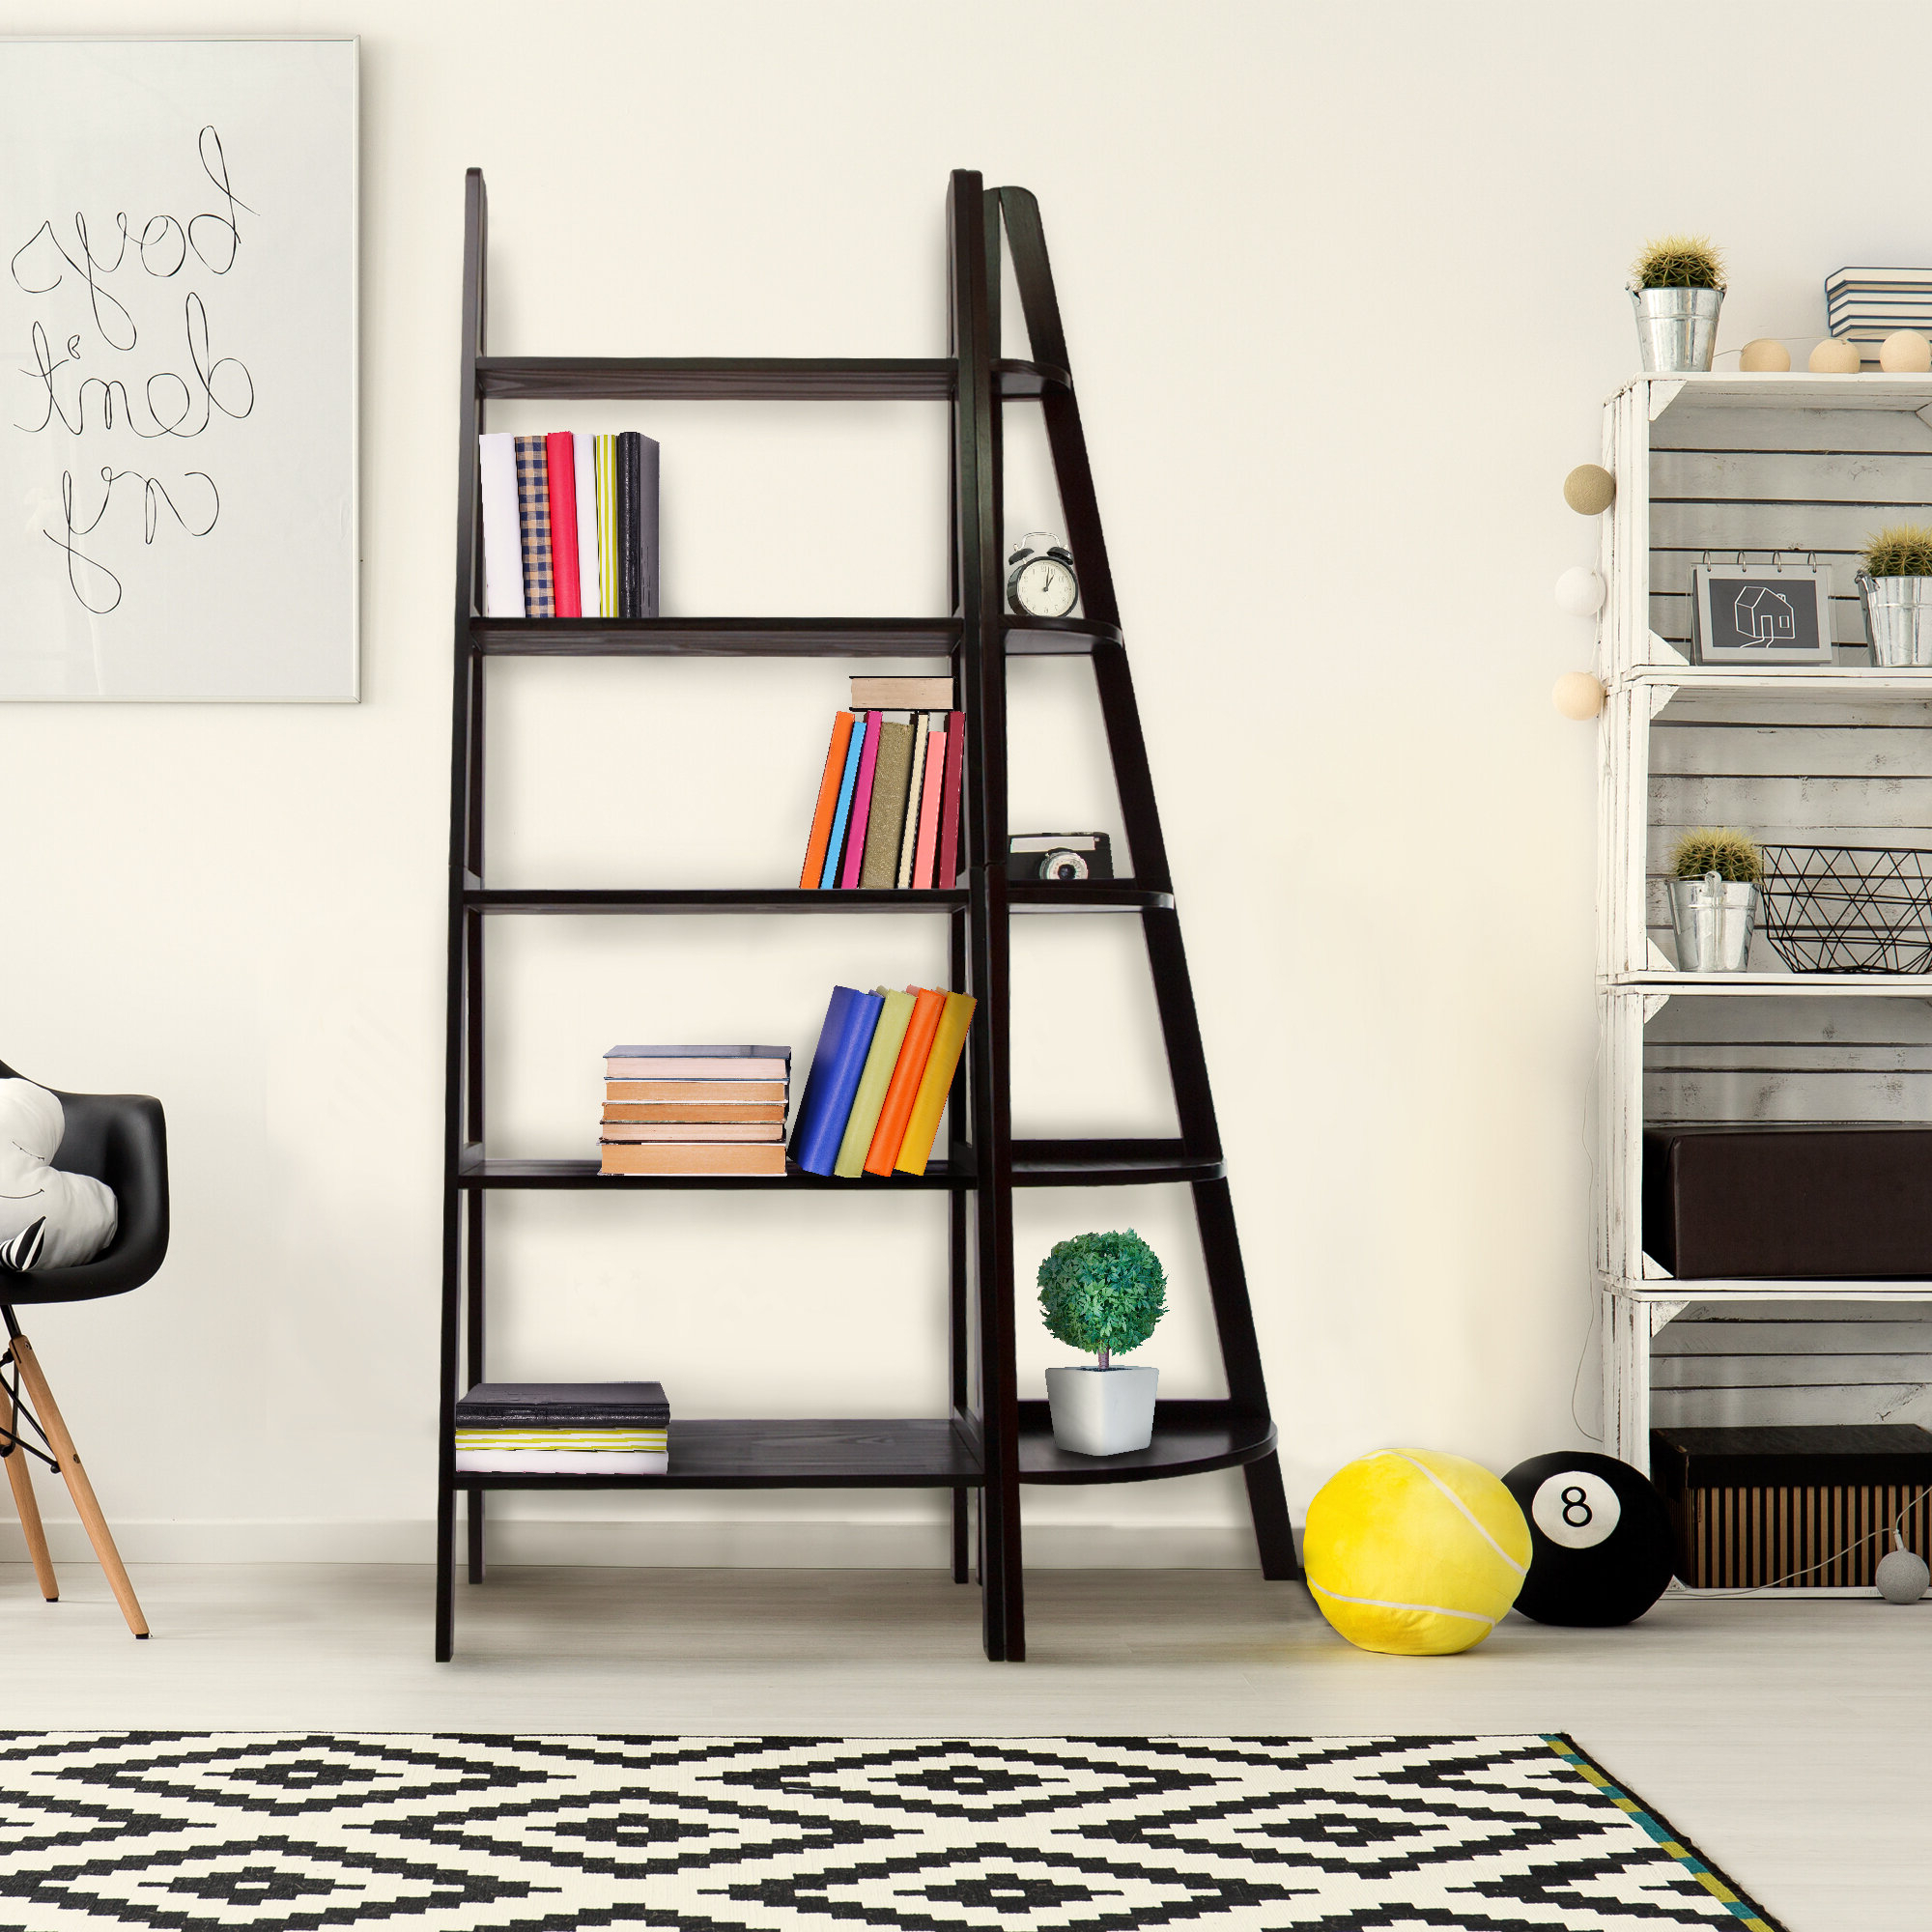 Taylorville Corner Bookcase For Fashionable Taylorville Corner Bookcases (View 4 of 20)